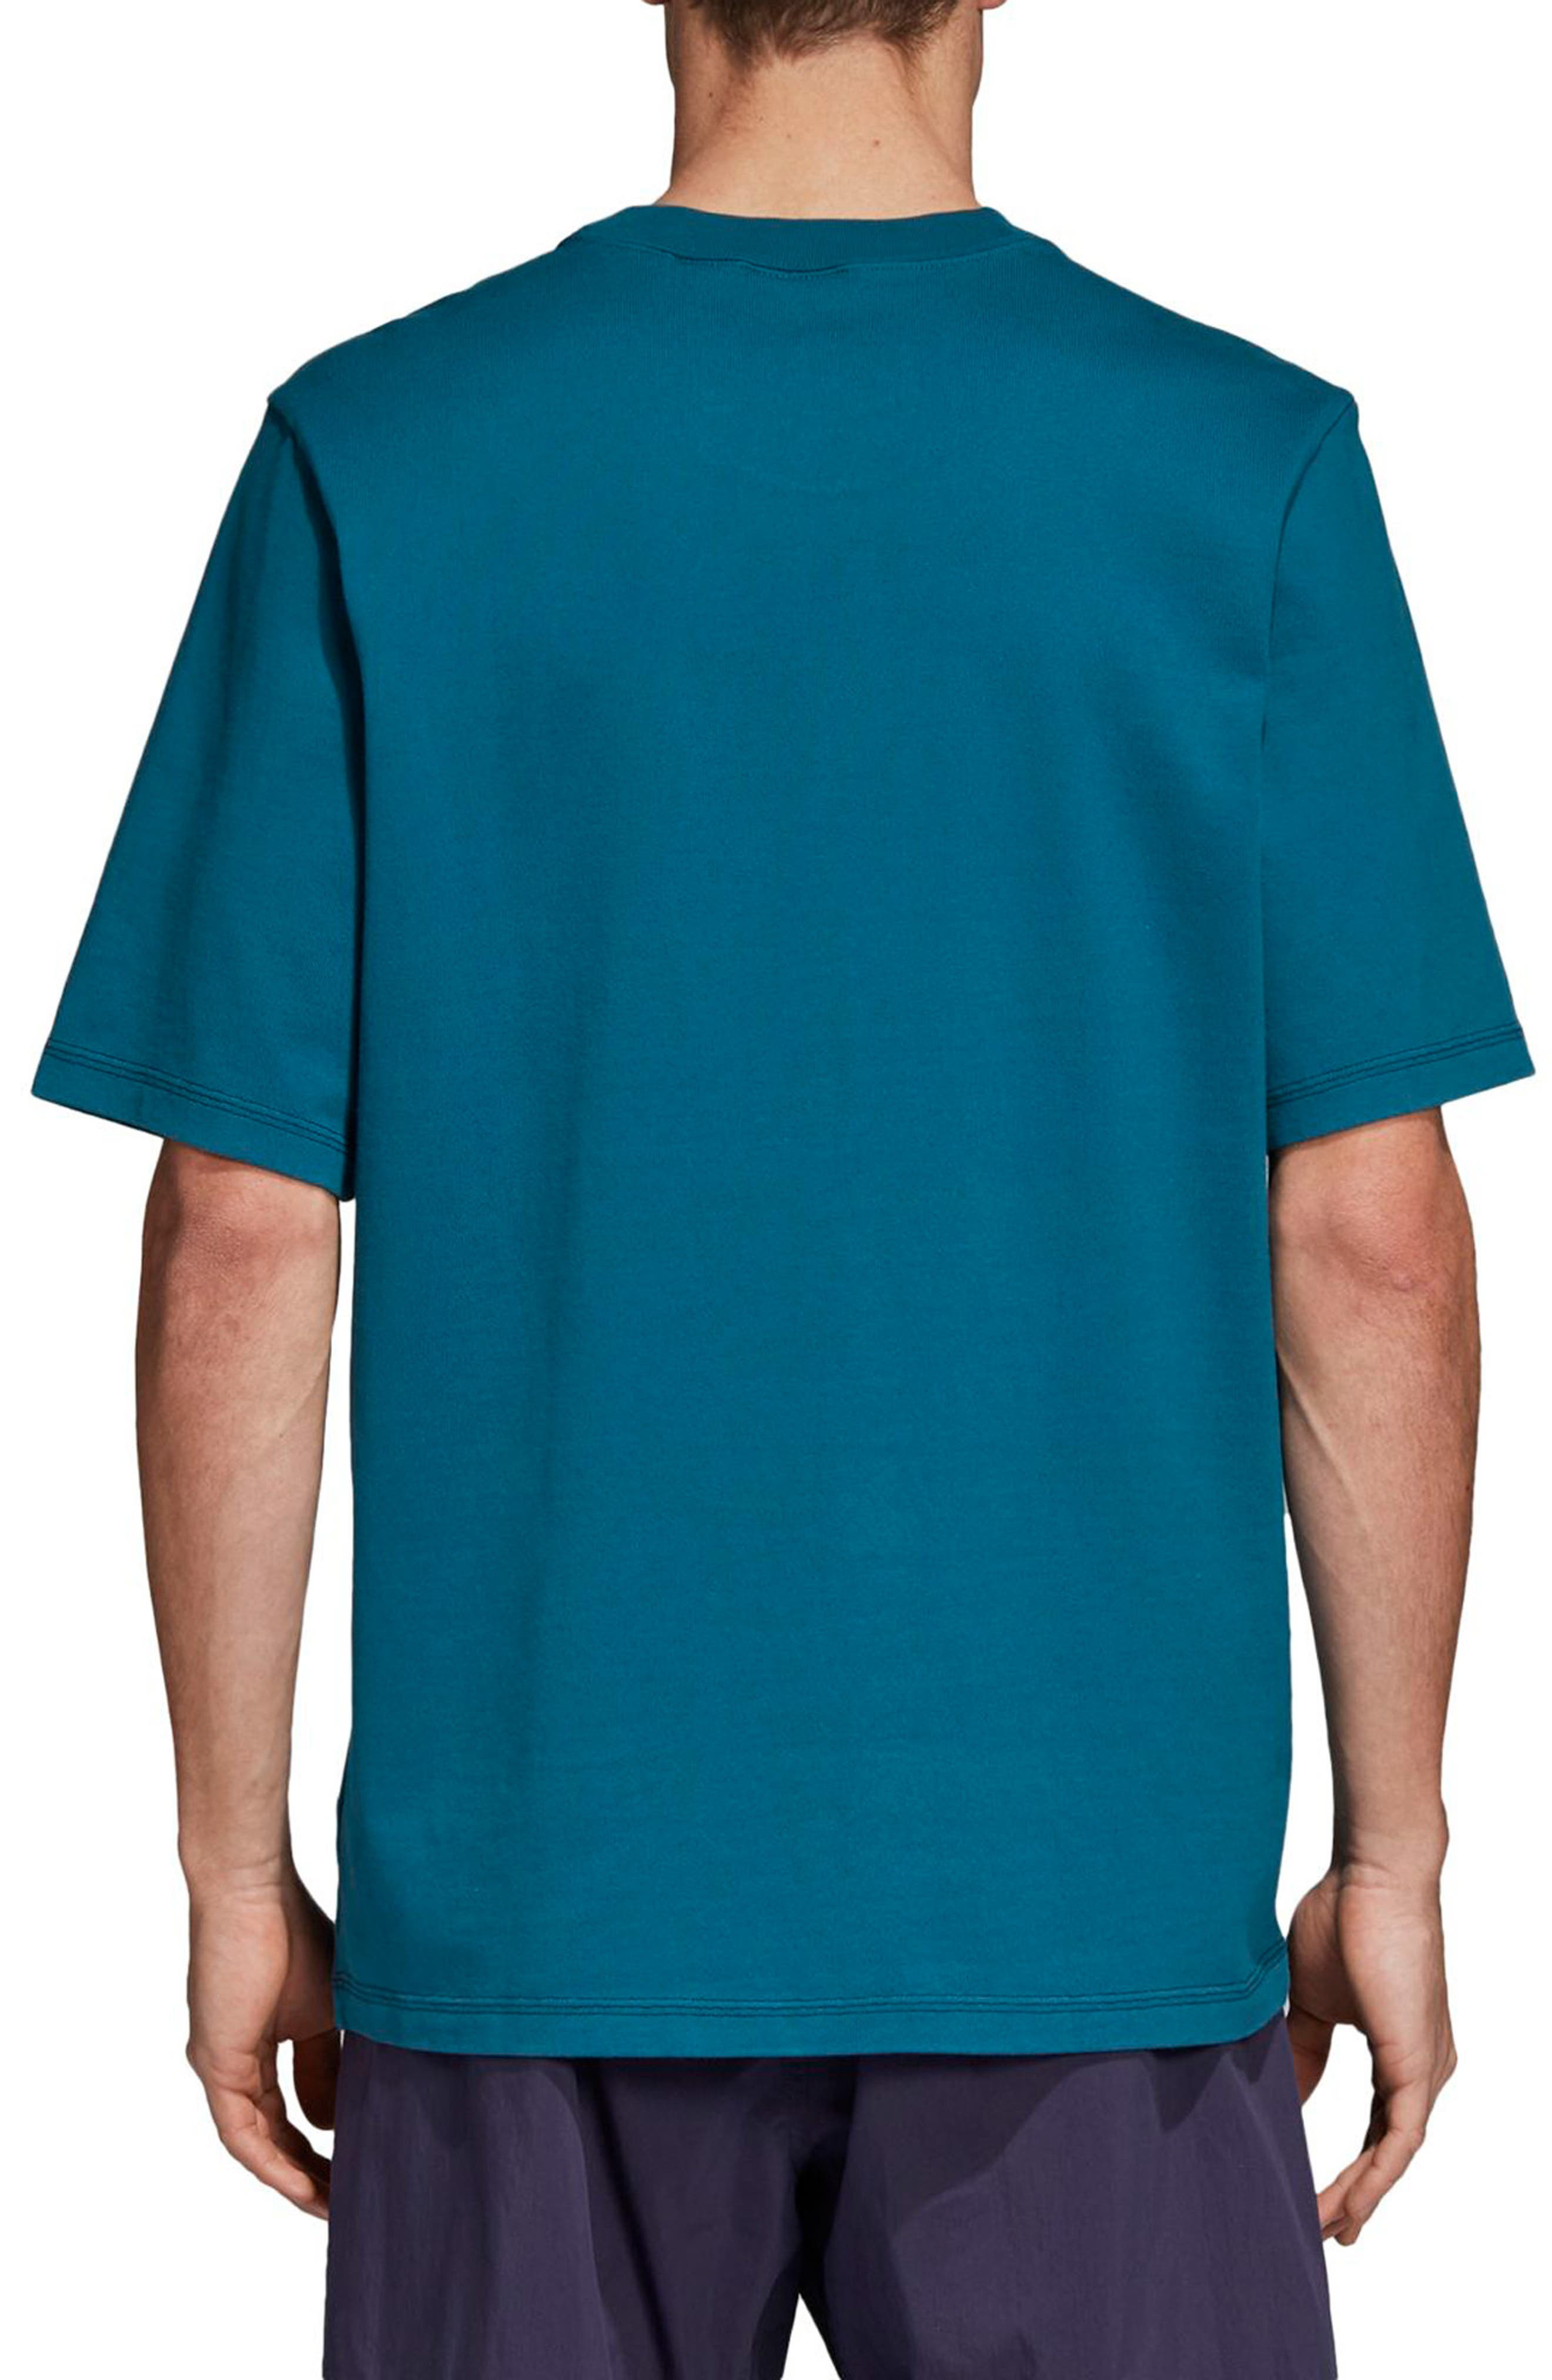 Adventure Graphic T-Shirt,                             Alternate thumbnail 2, color,                             Real Teal